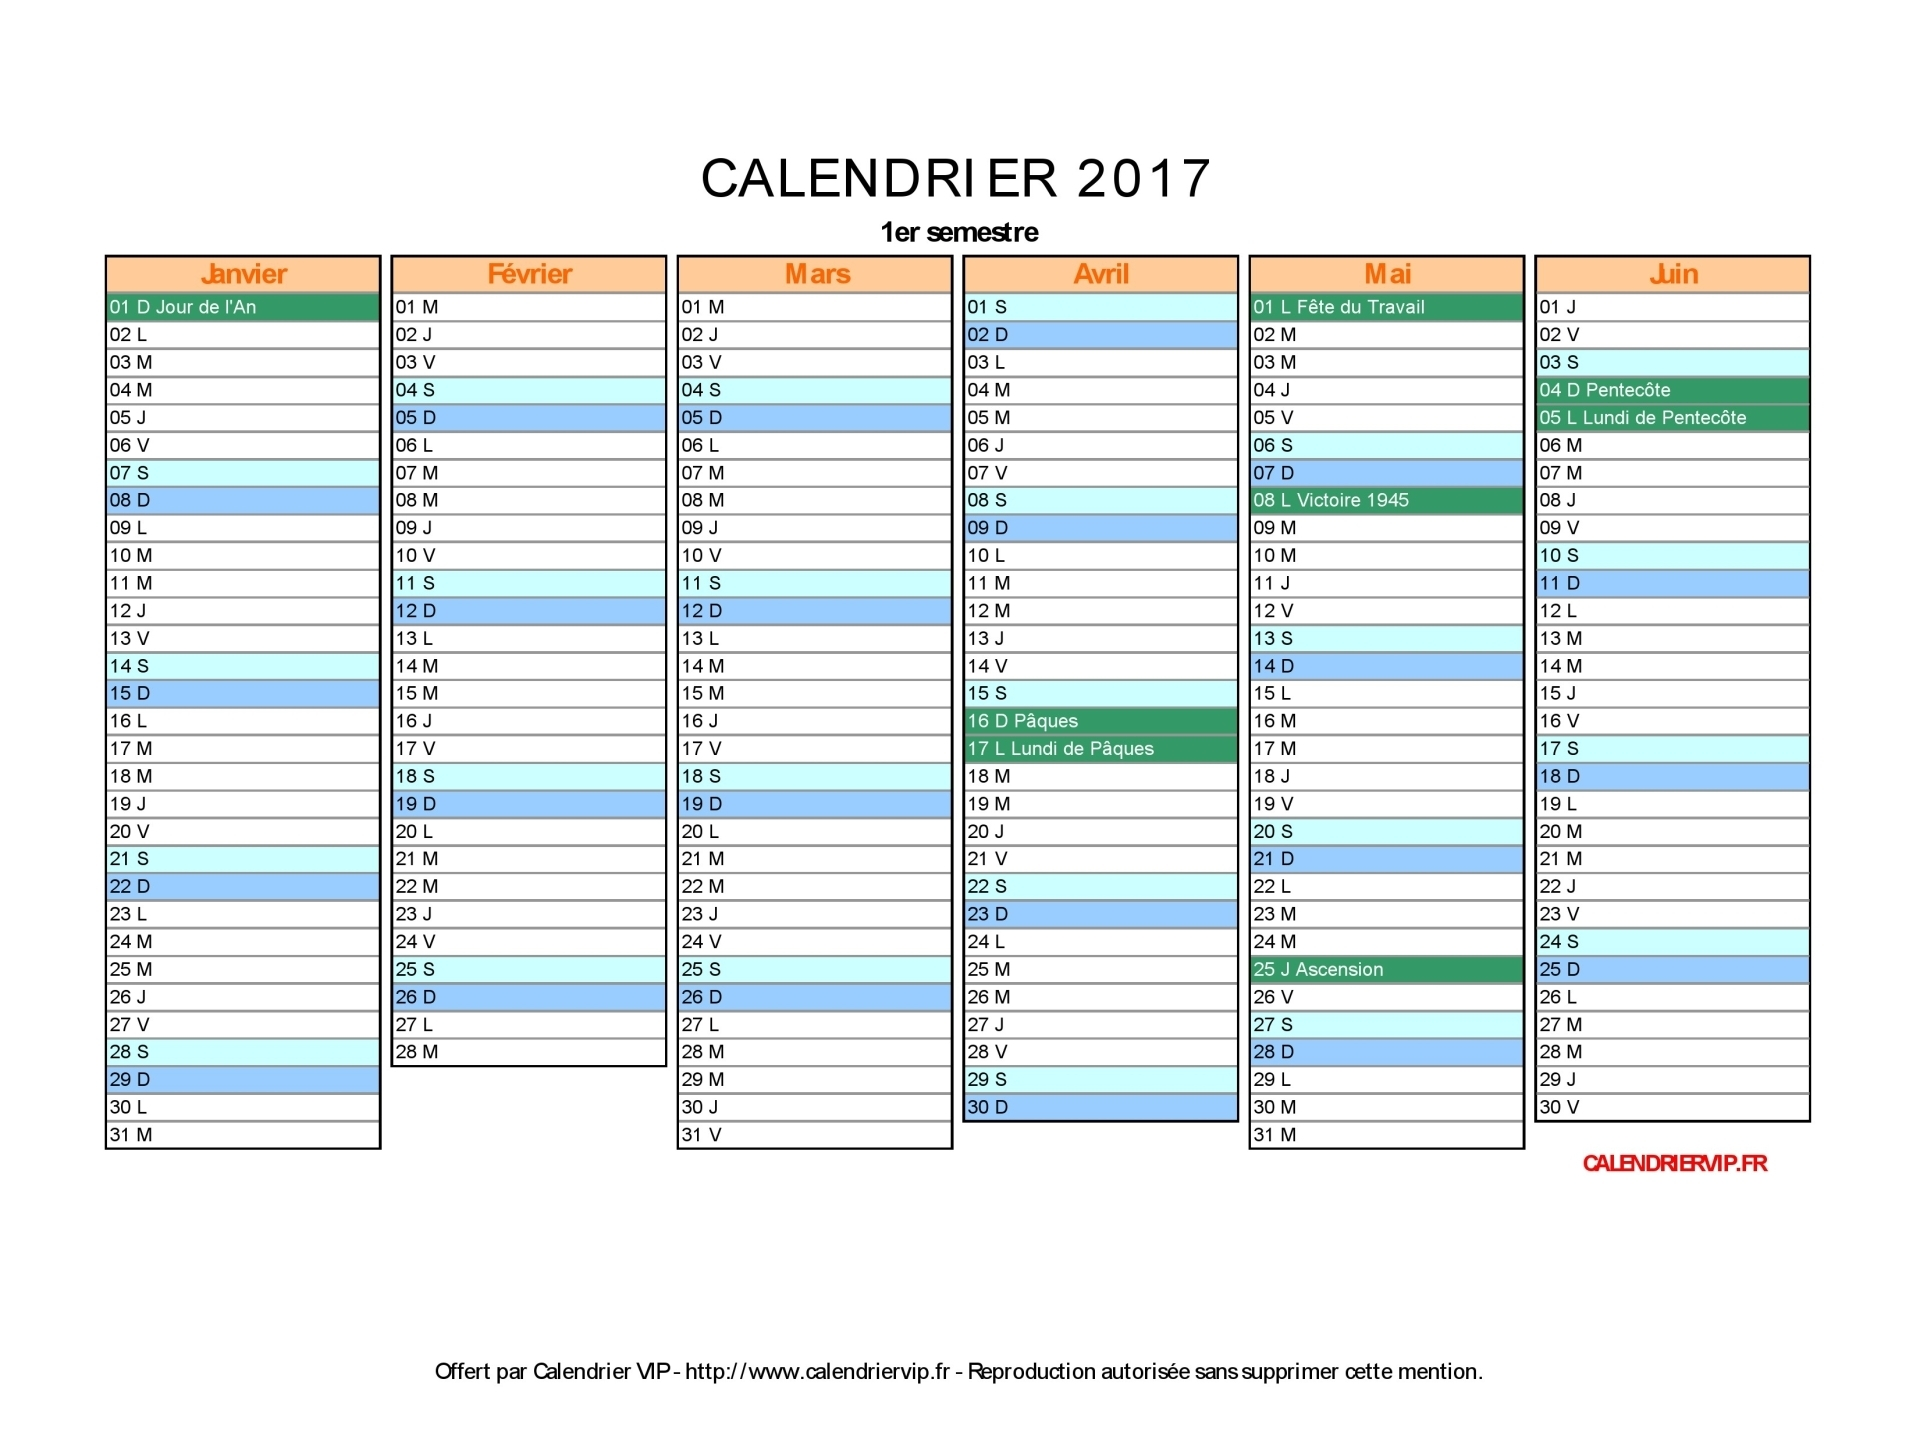 Calendrier 2017 vierge inter odon football club - Calendrier lunaire notre temps 2017 ...